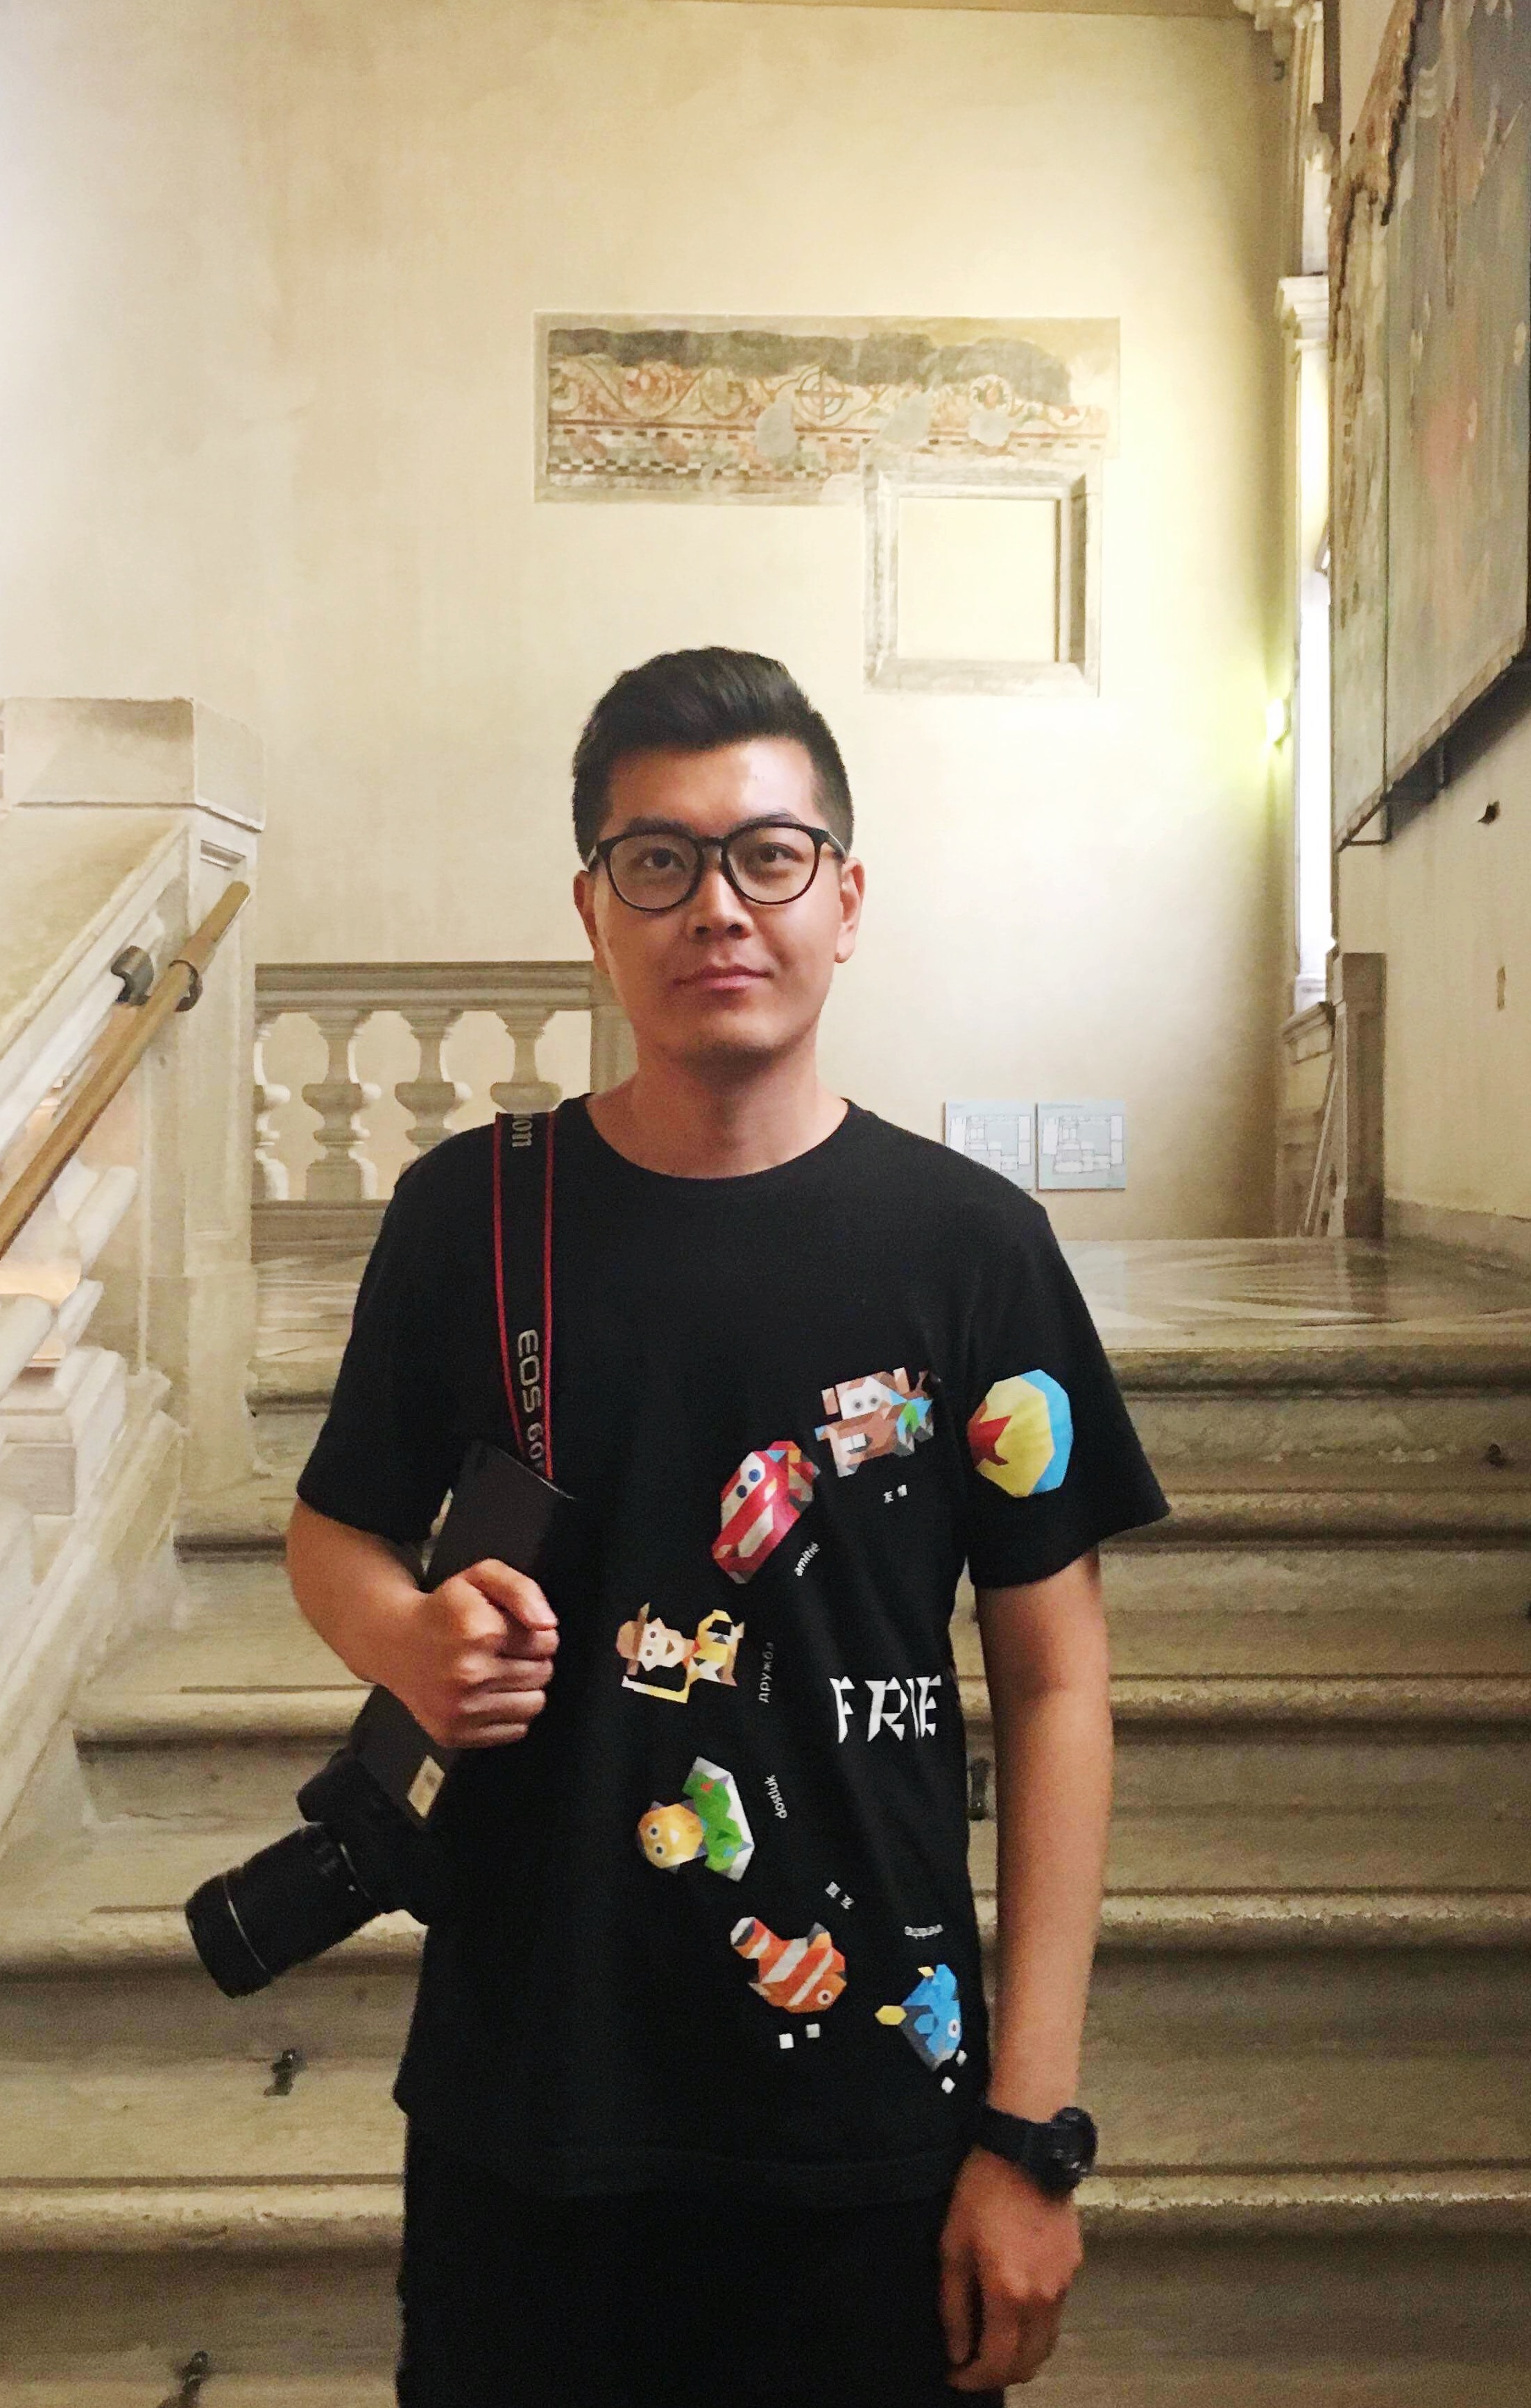 Penghui is pictured here visiting the Accademia.